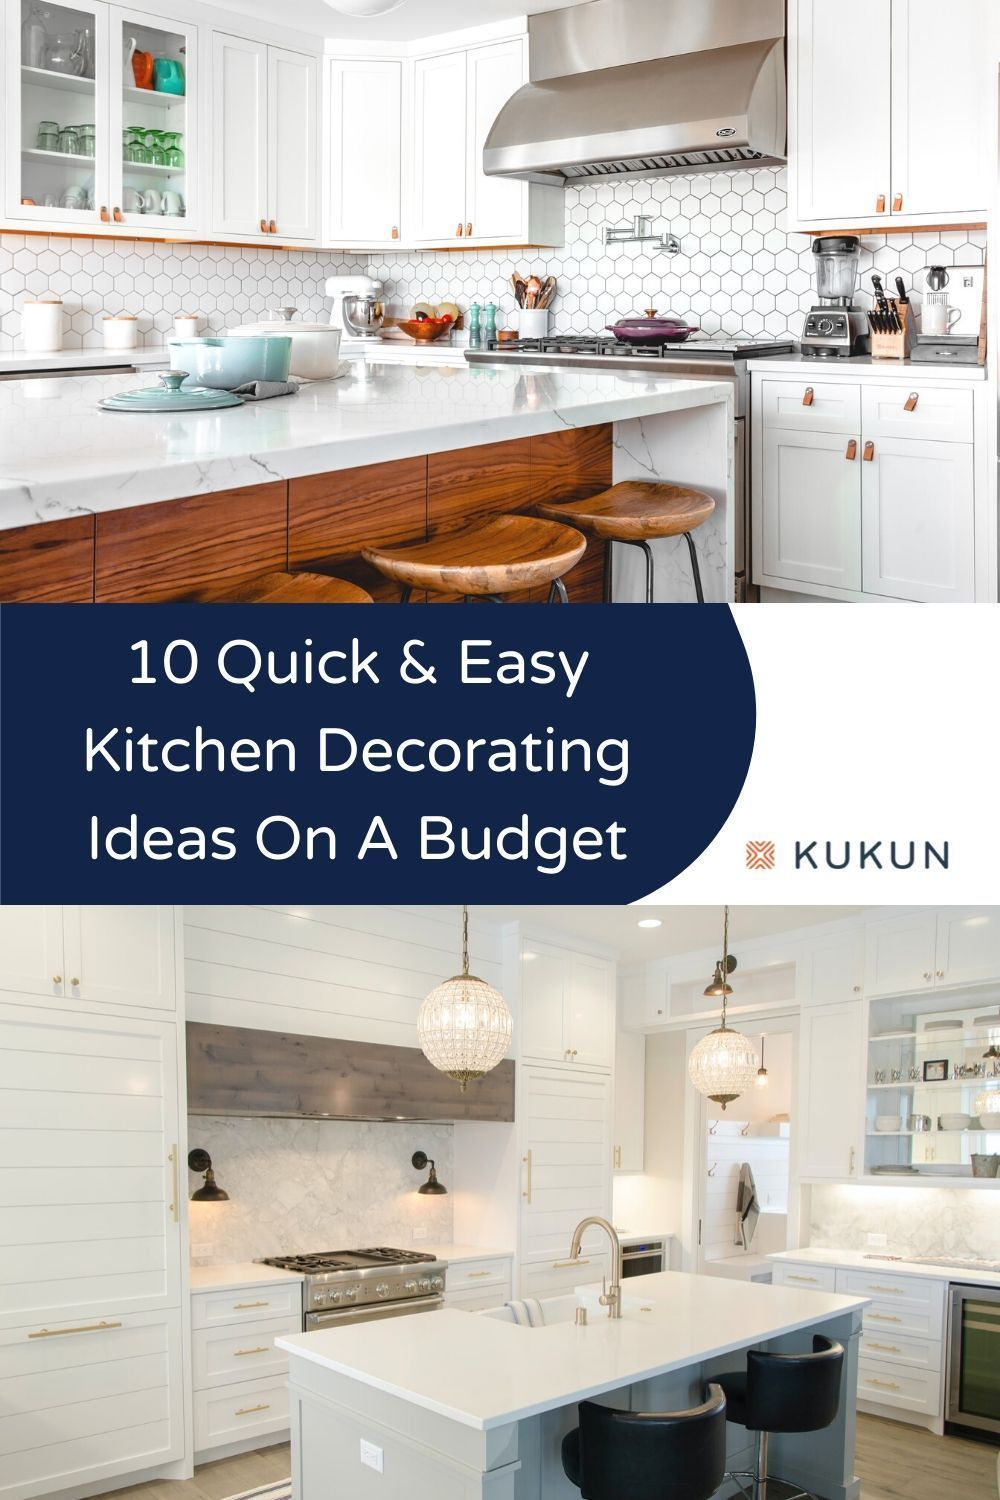 10 Quick And Easy Kitchen Decorating Ideas On A Budget Kukun Affordable Decor Design